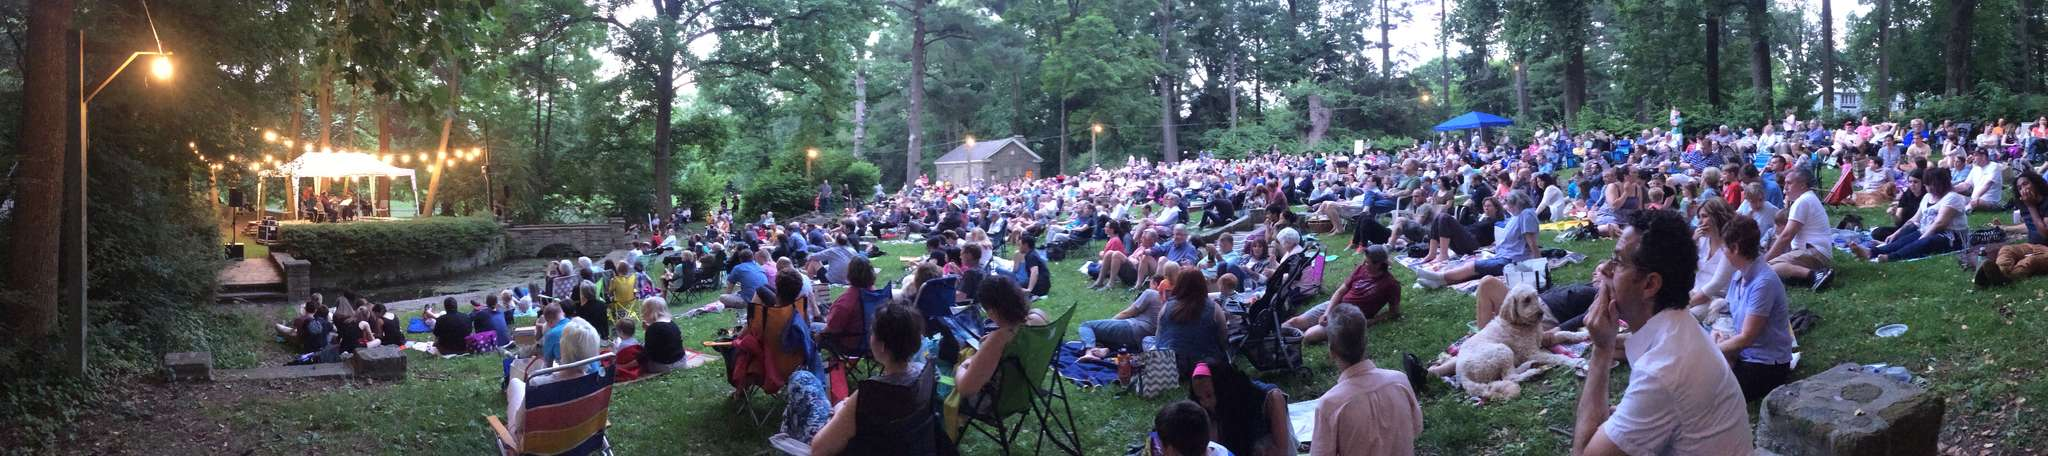 Philadelphia Orchestra´s 2016 summer concert series kicked off in Chestnut Hill - without the orchestra.